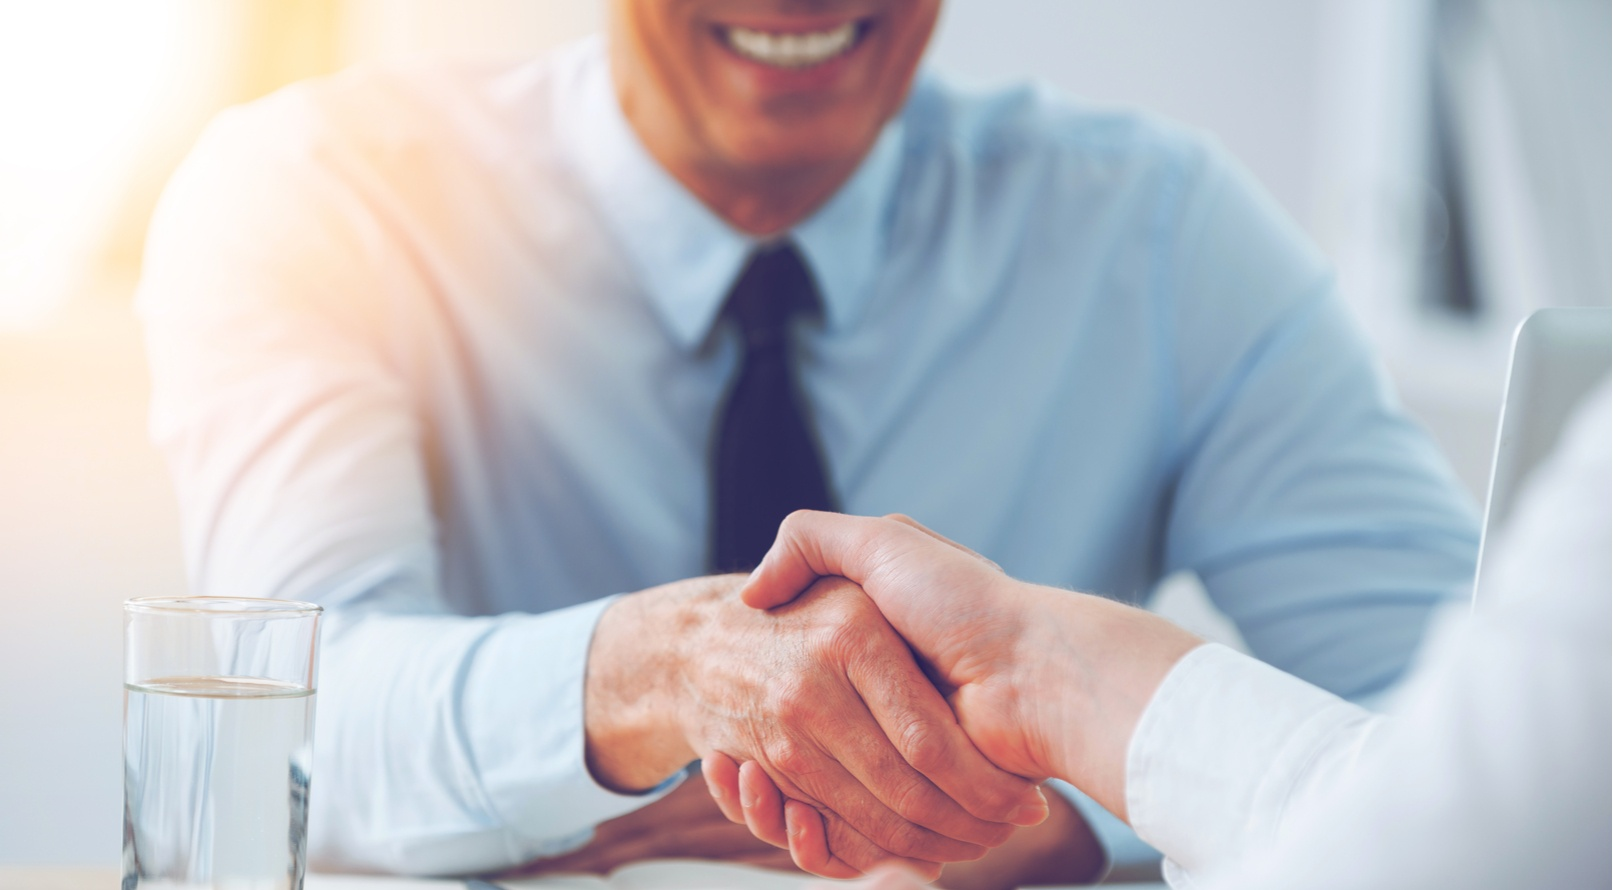 10 Common Behavioral Interview Questions